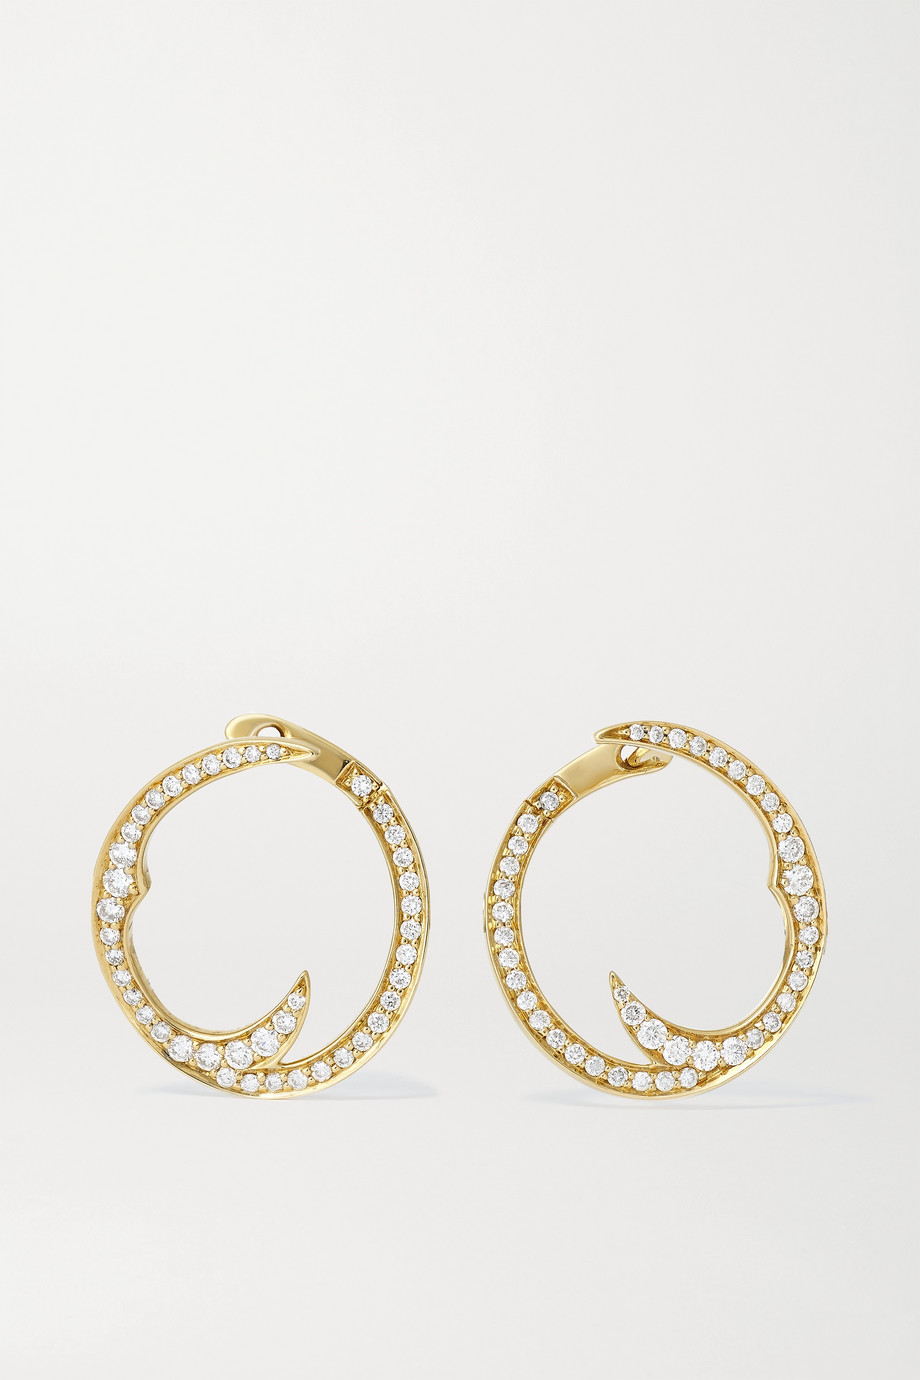 STEPHEN WEBSTER Thorn Stem 18-karat gold diamond hoop earrings